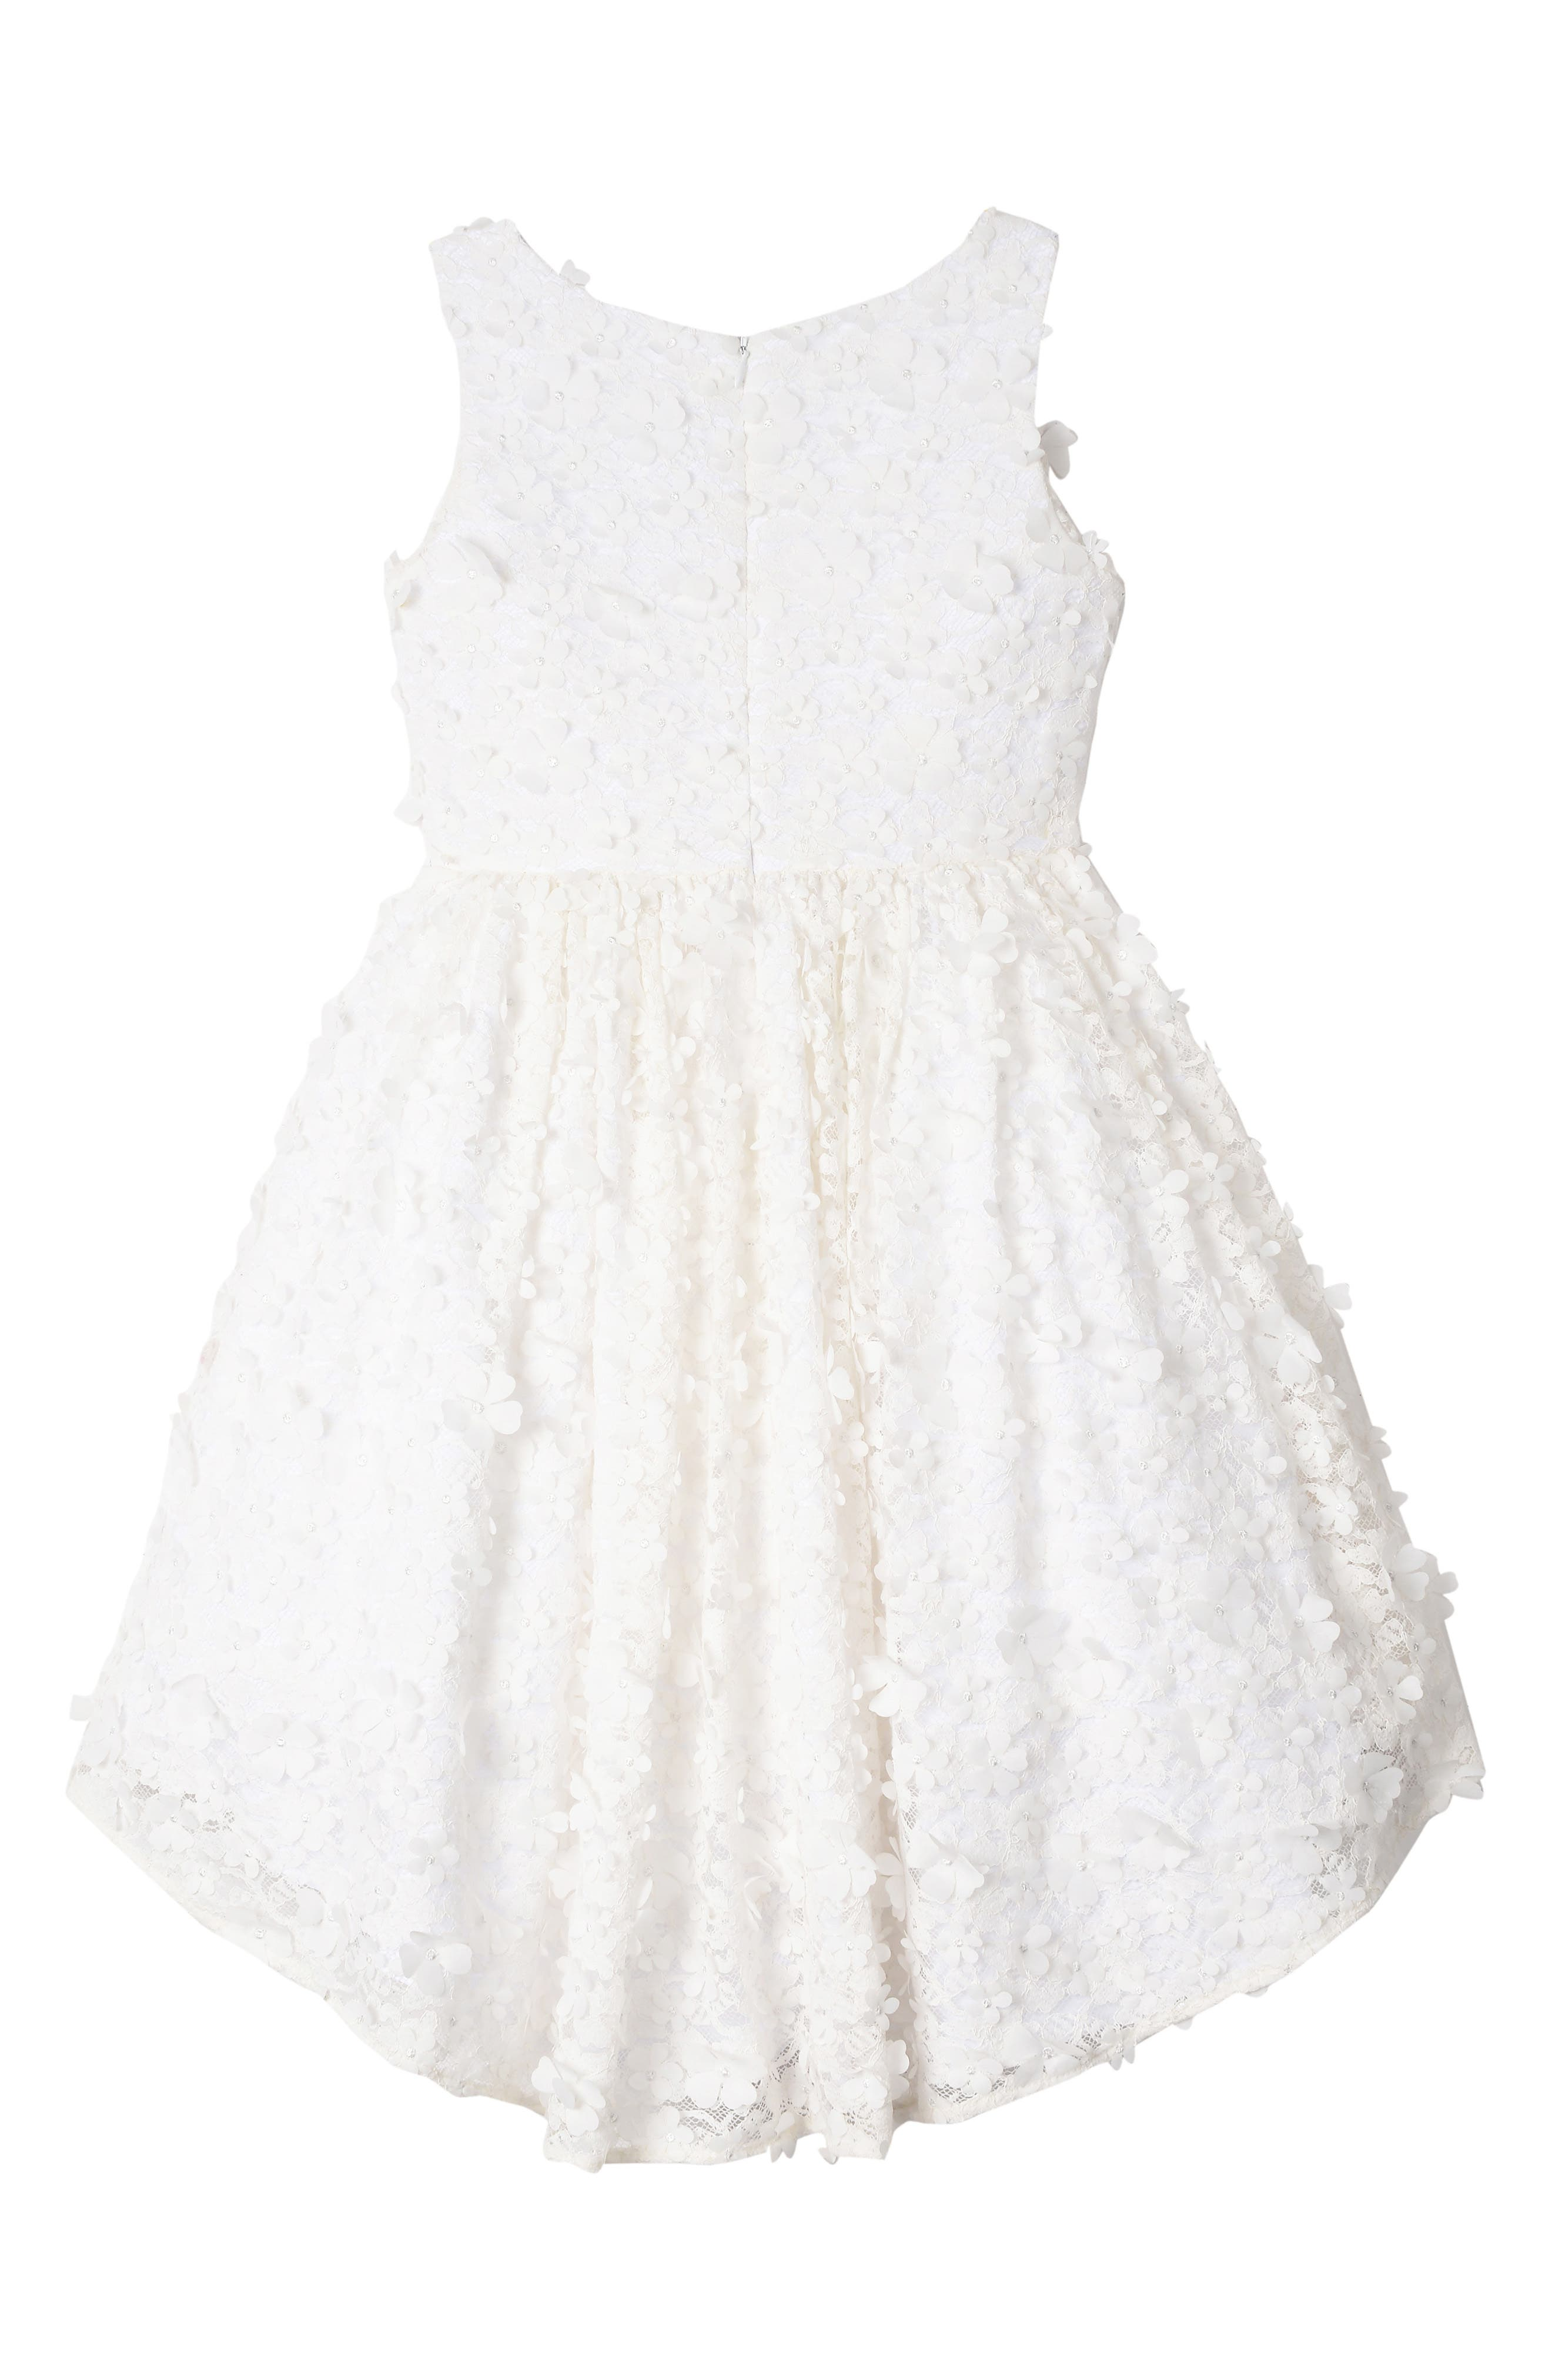 BADGLEY MISCHKA COLLECTION,                             Badgley Mischka 3D Flower High/Low Lace Dress,                             Alternate thumbnail 2, color,                             WHITE